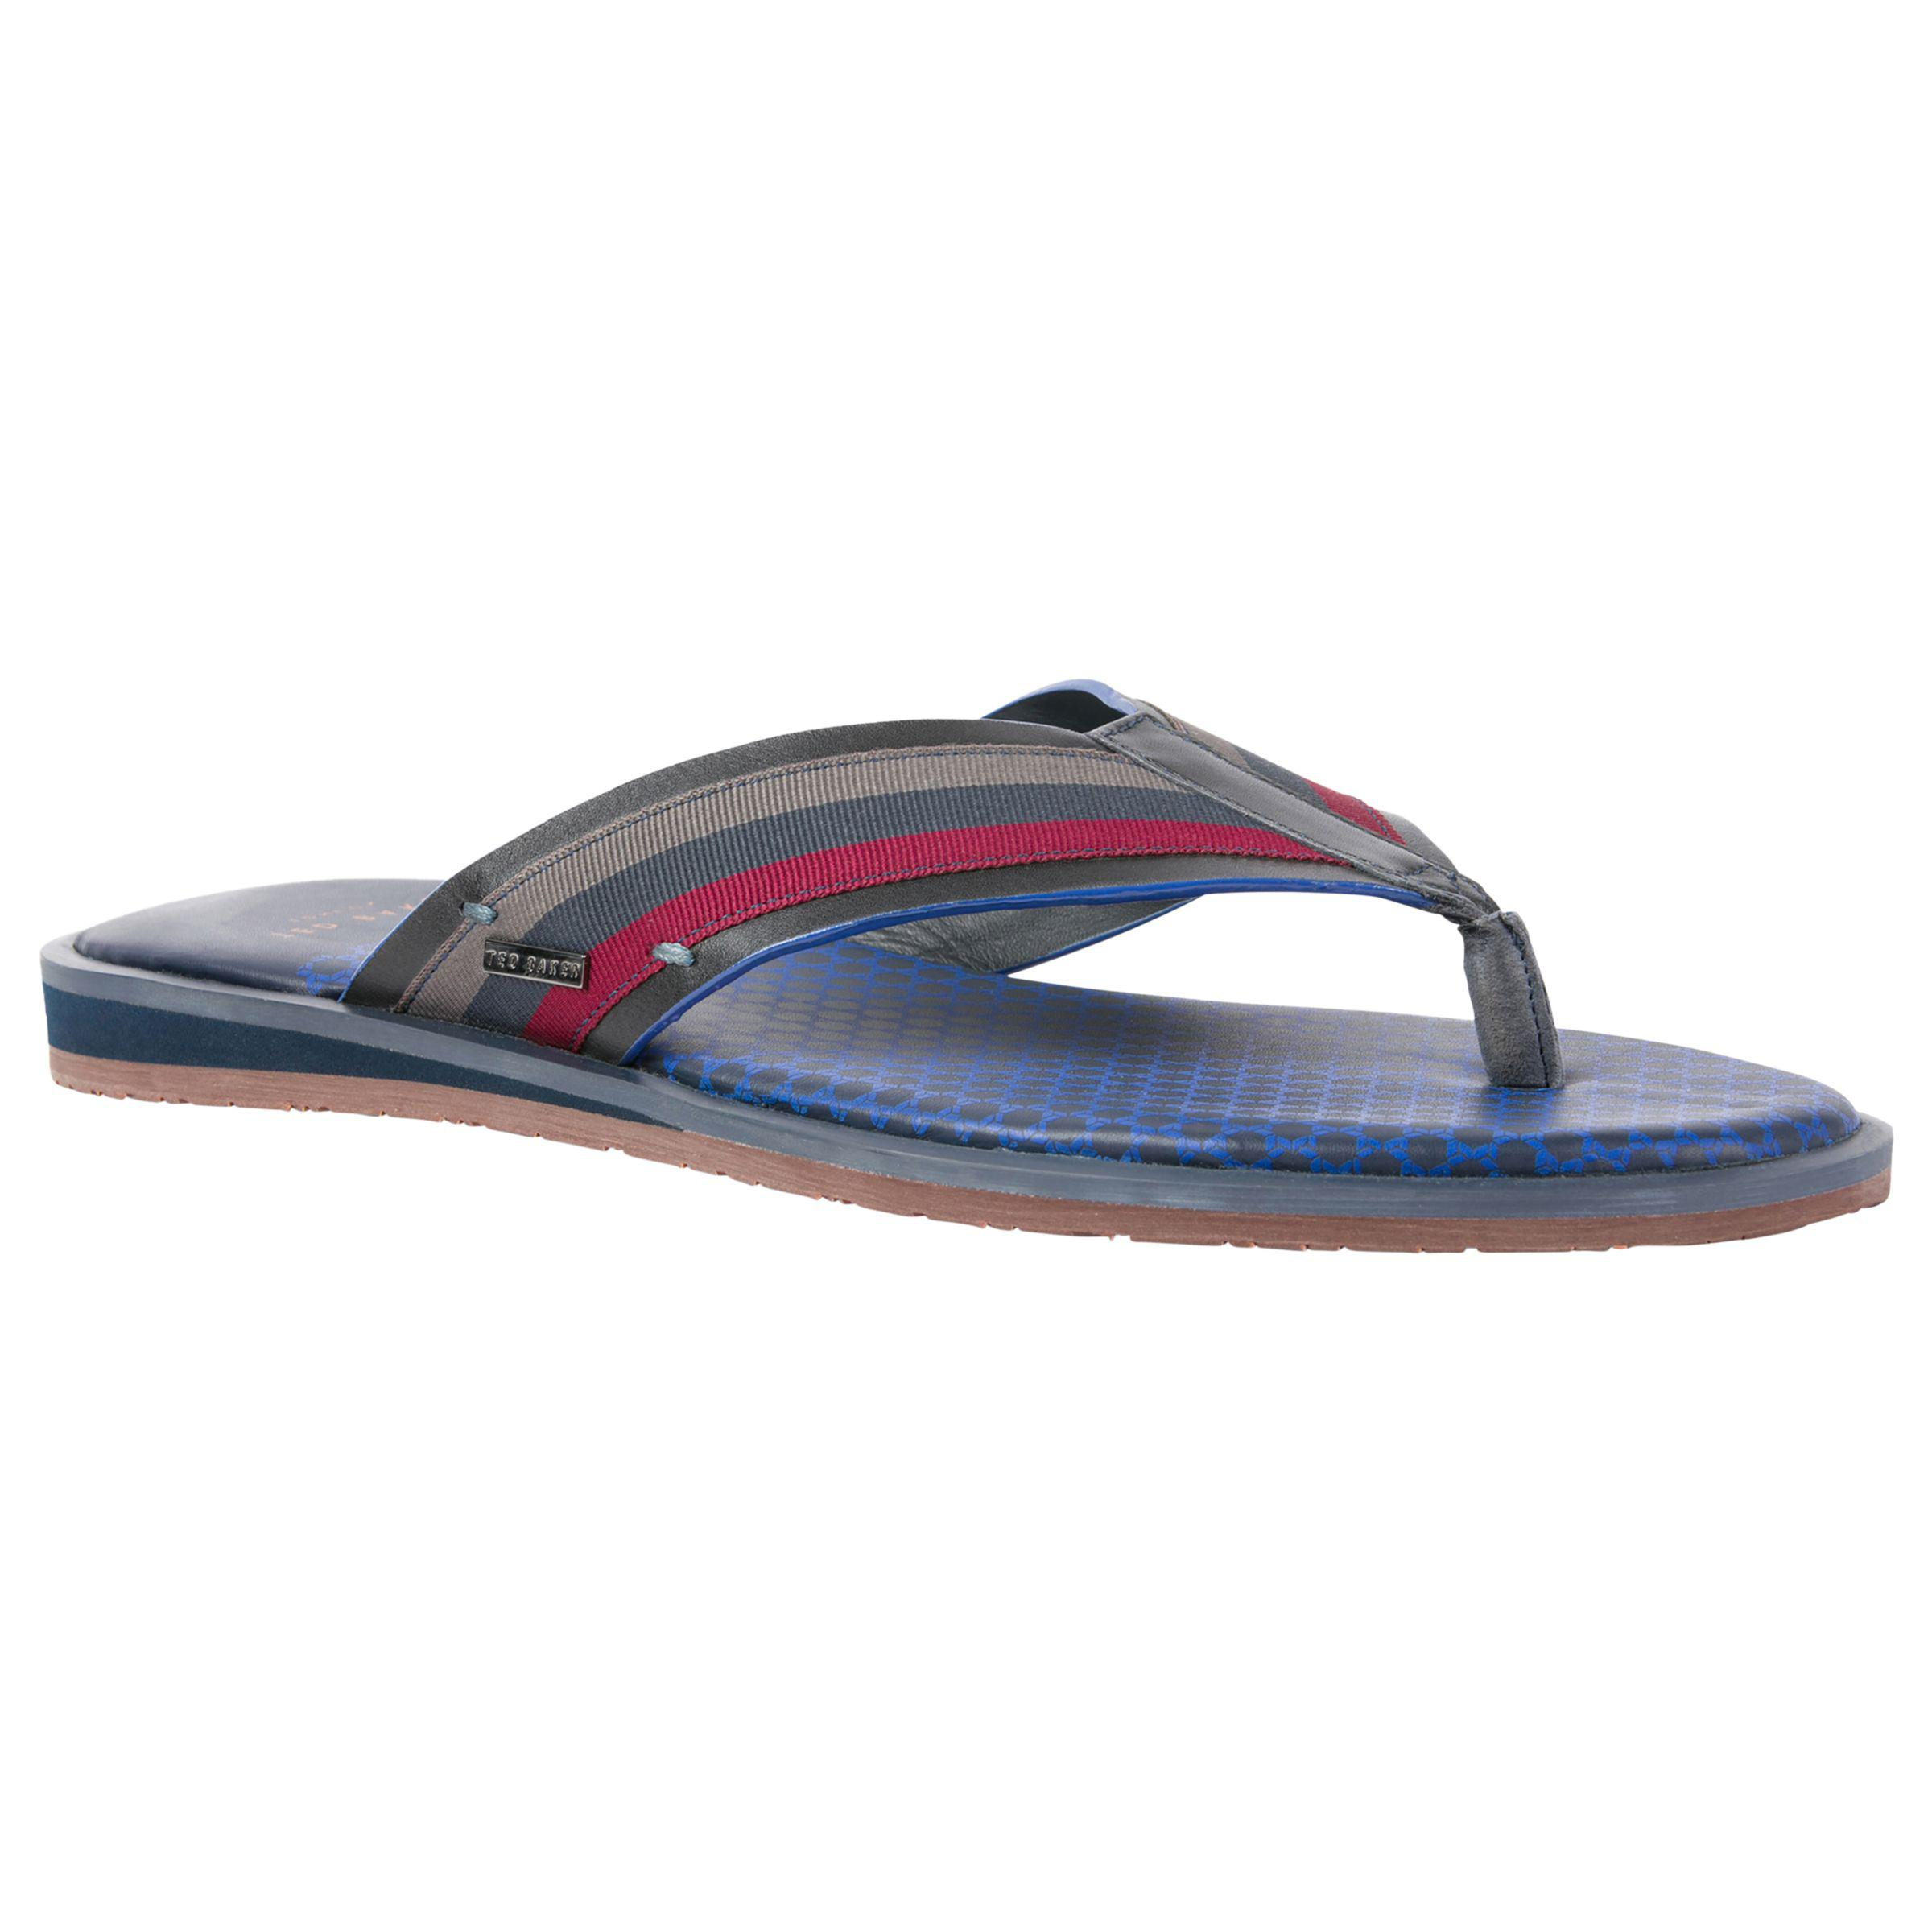 aeec1201dbda19 Ted Baker Knowlun Toe Post Sandals in Blue for Men - Lyst